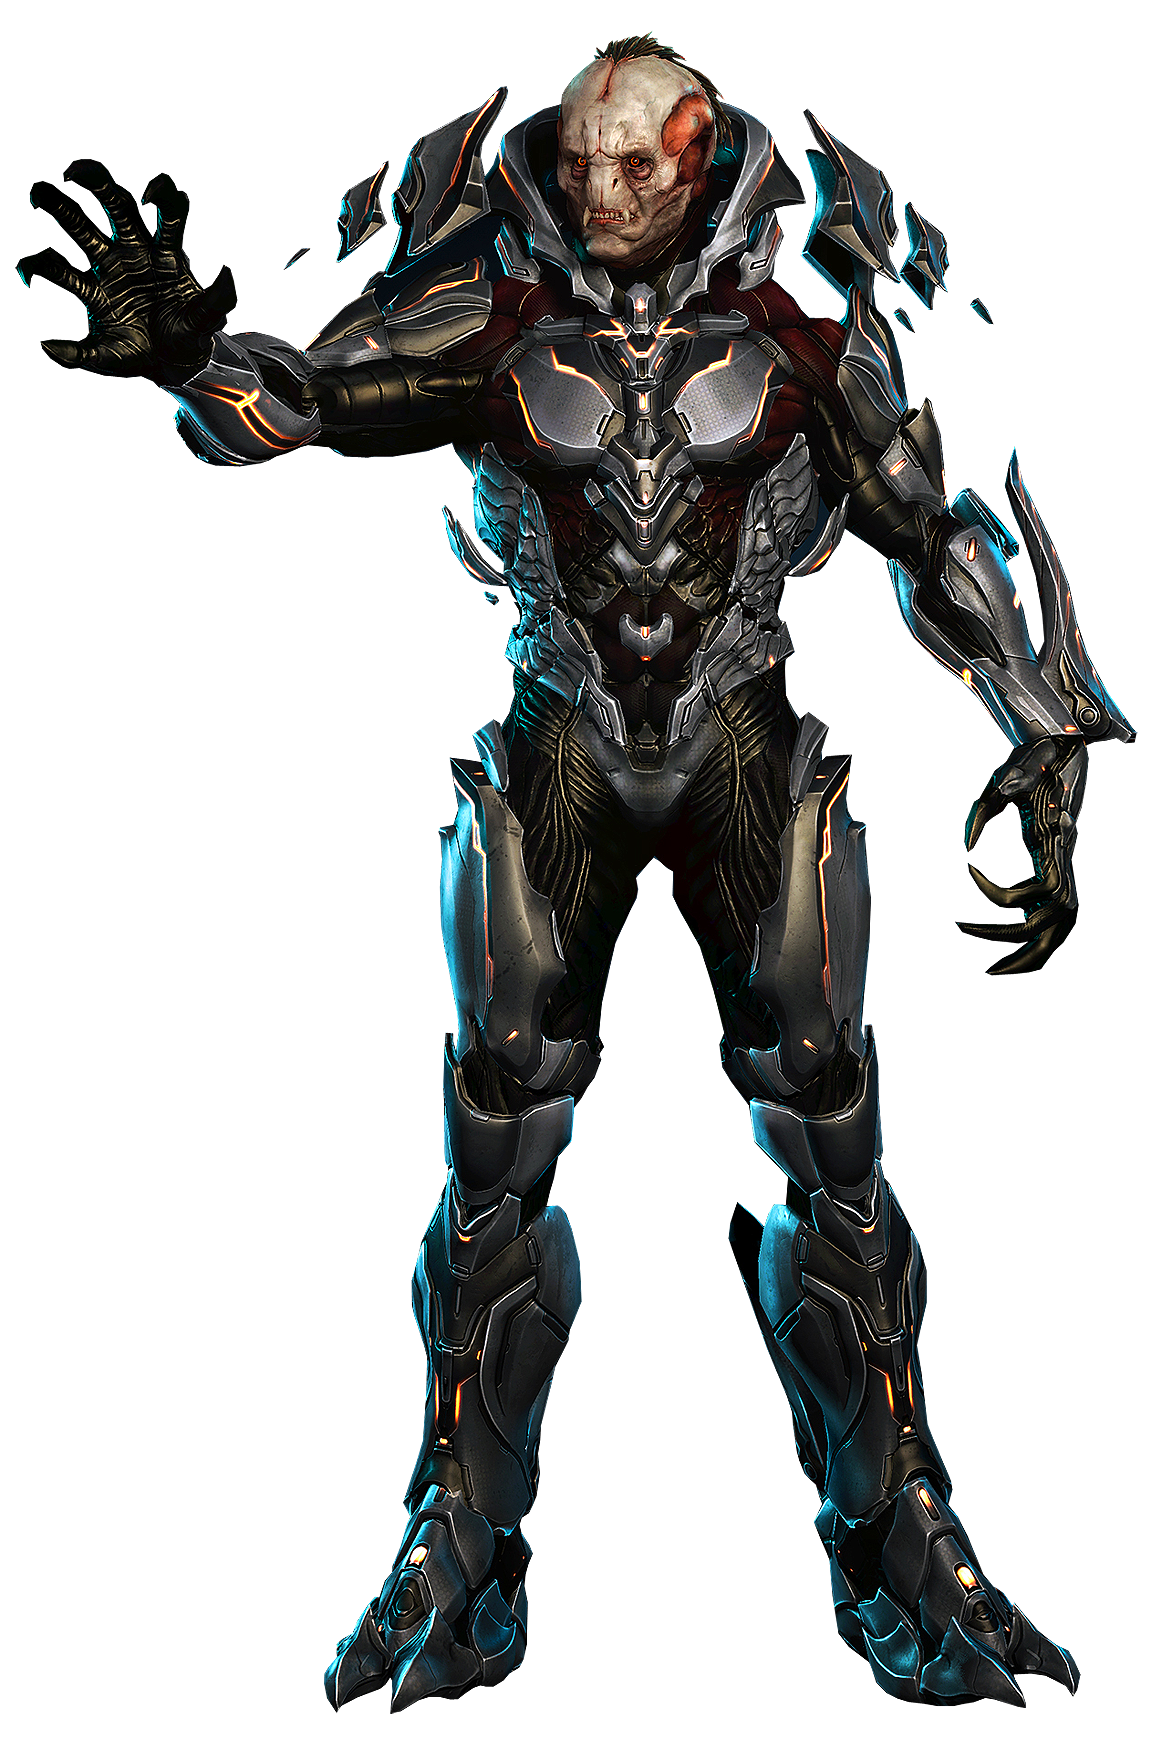 Halo 4 - The Didact (Render) HQ by Crussong on DeviantArt